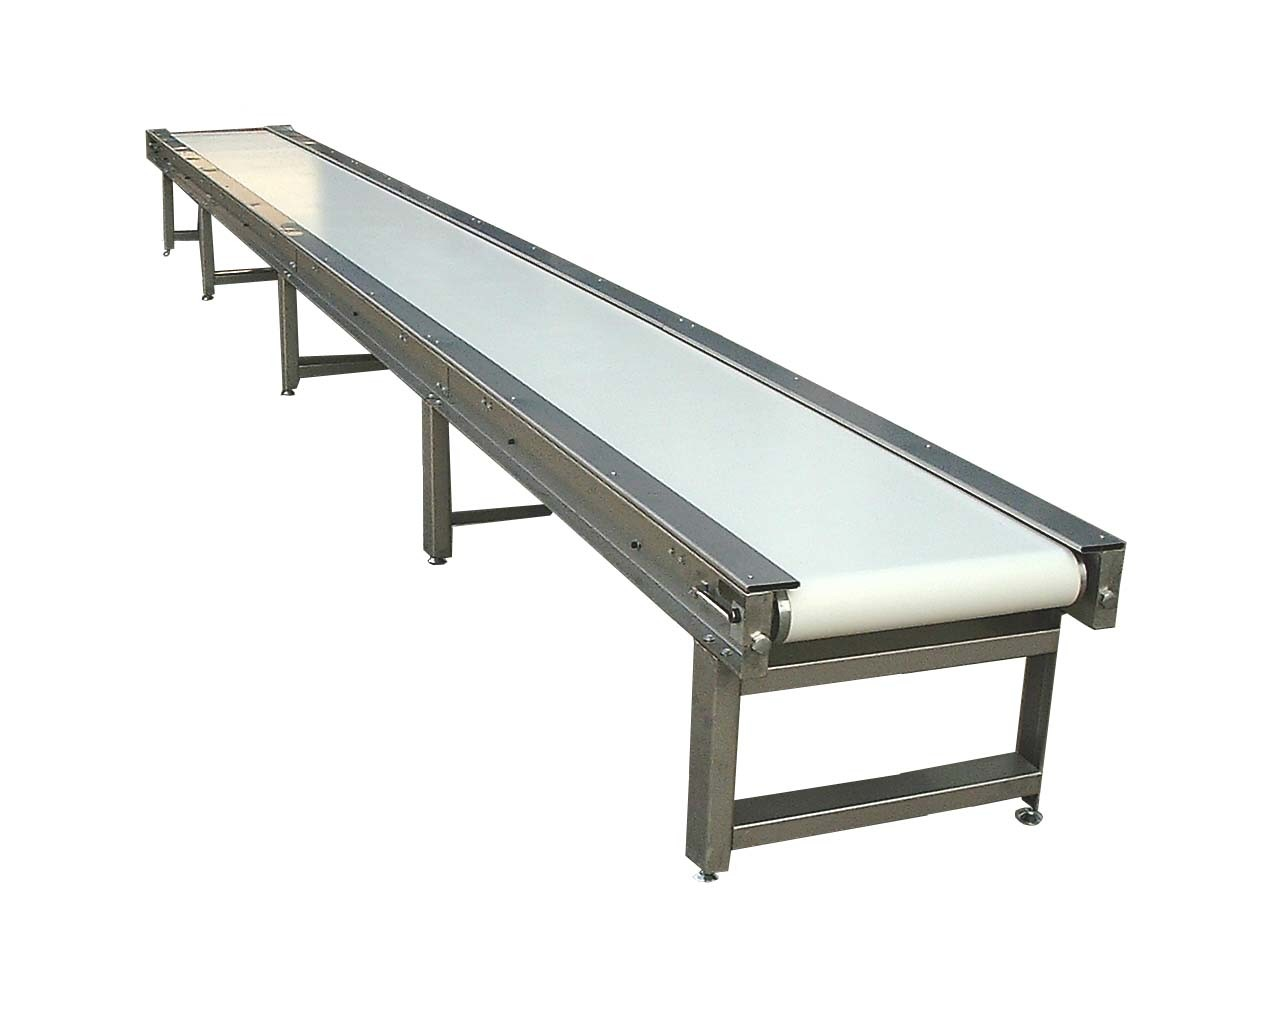 Stainless Belt Conveyor for Food Transportation